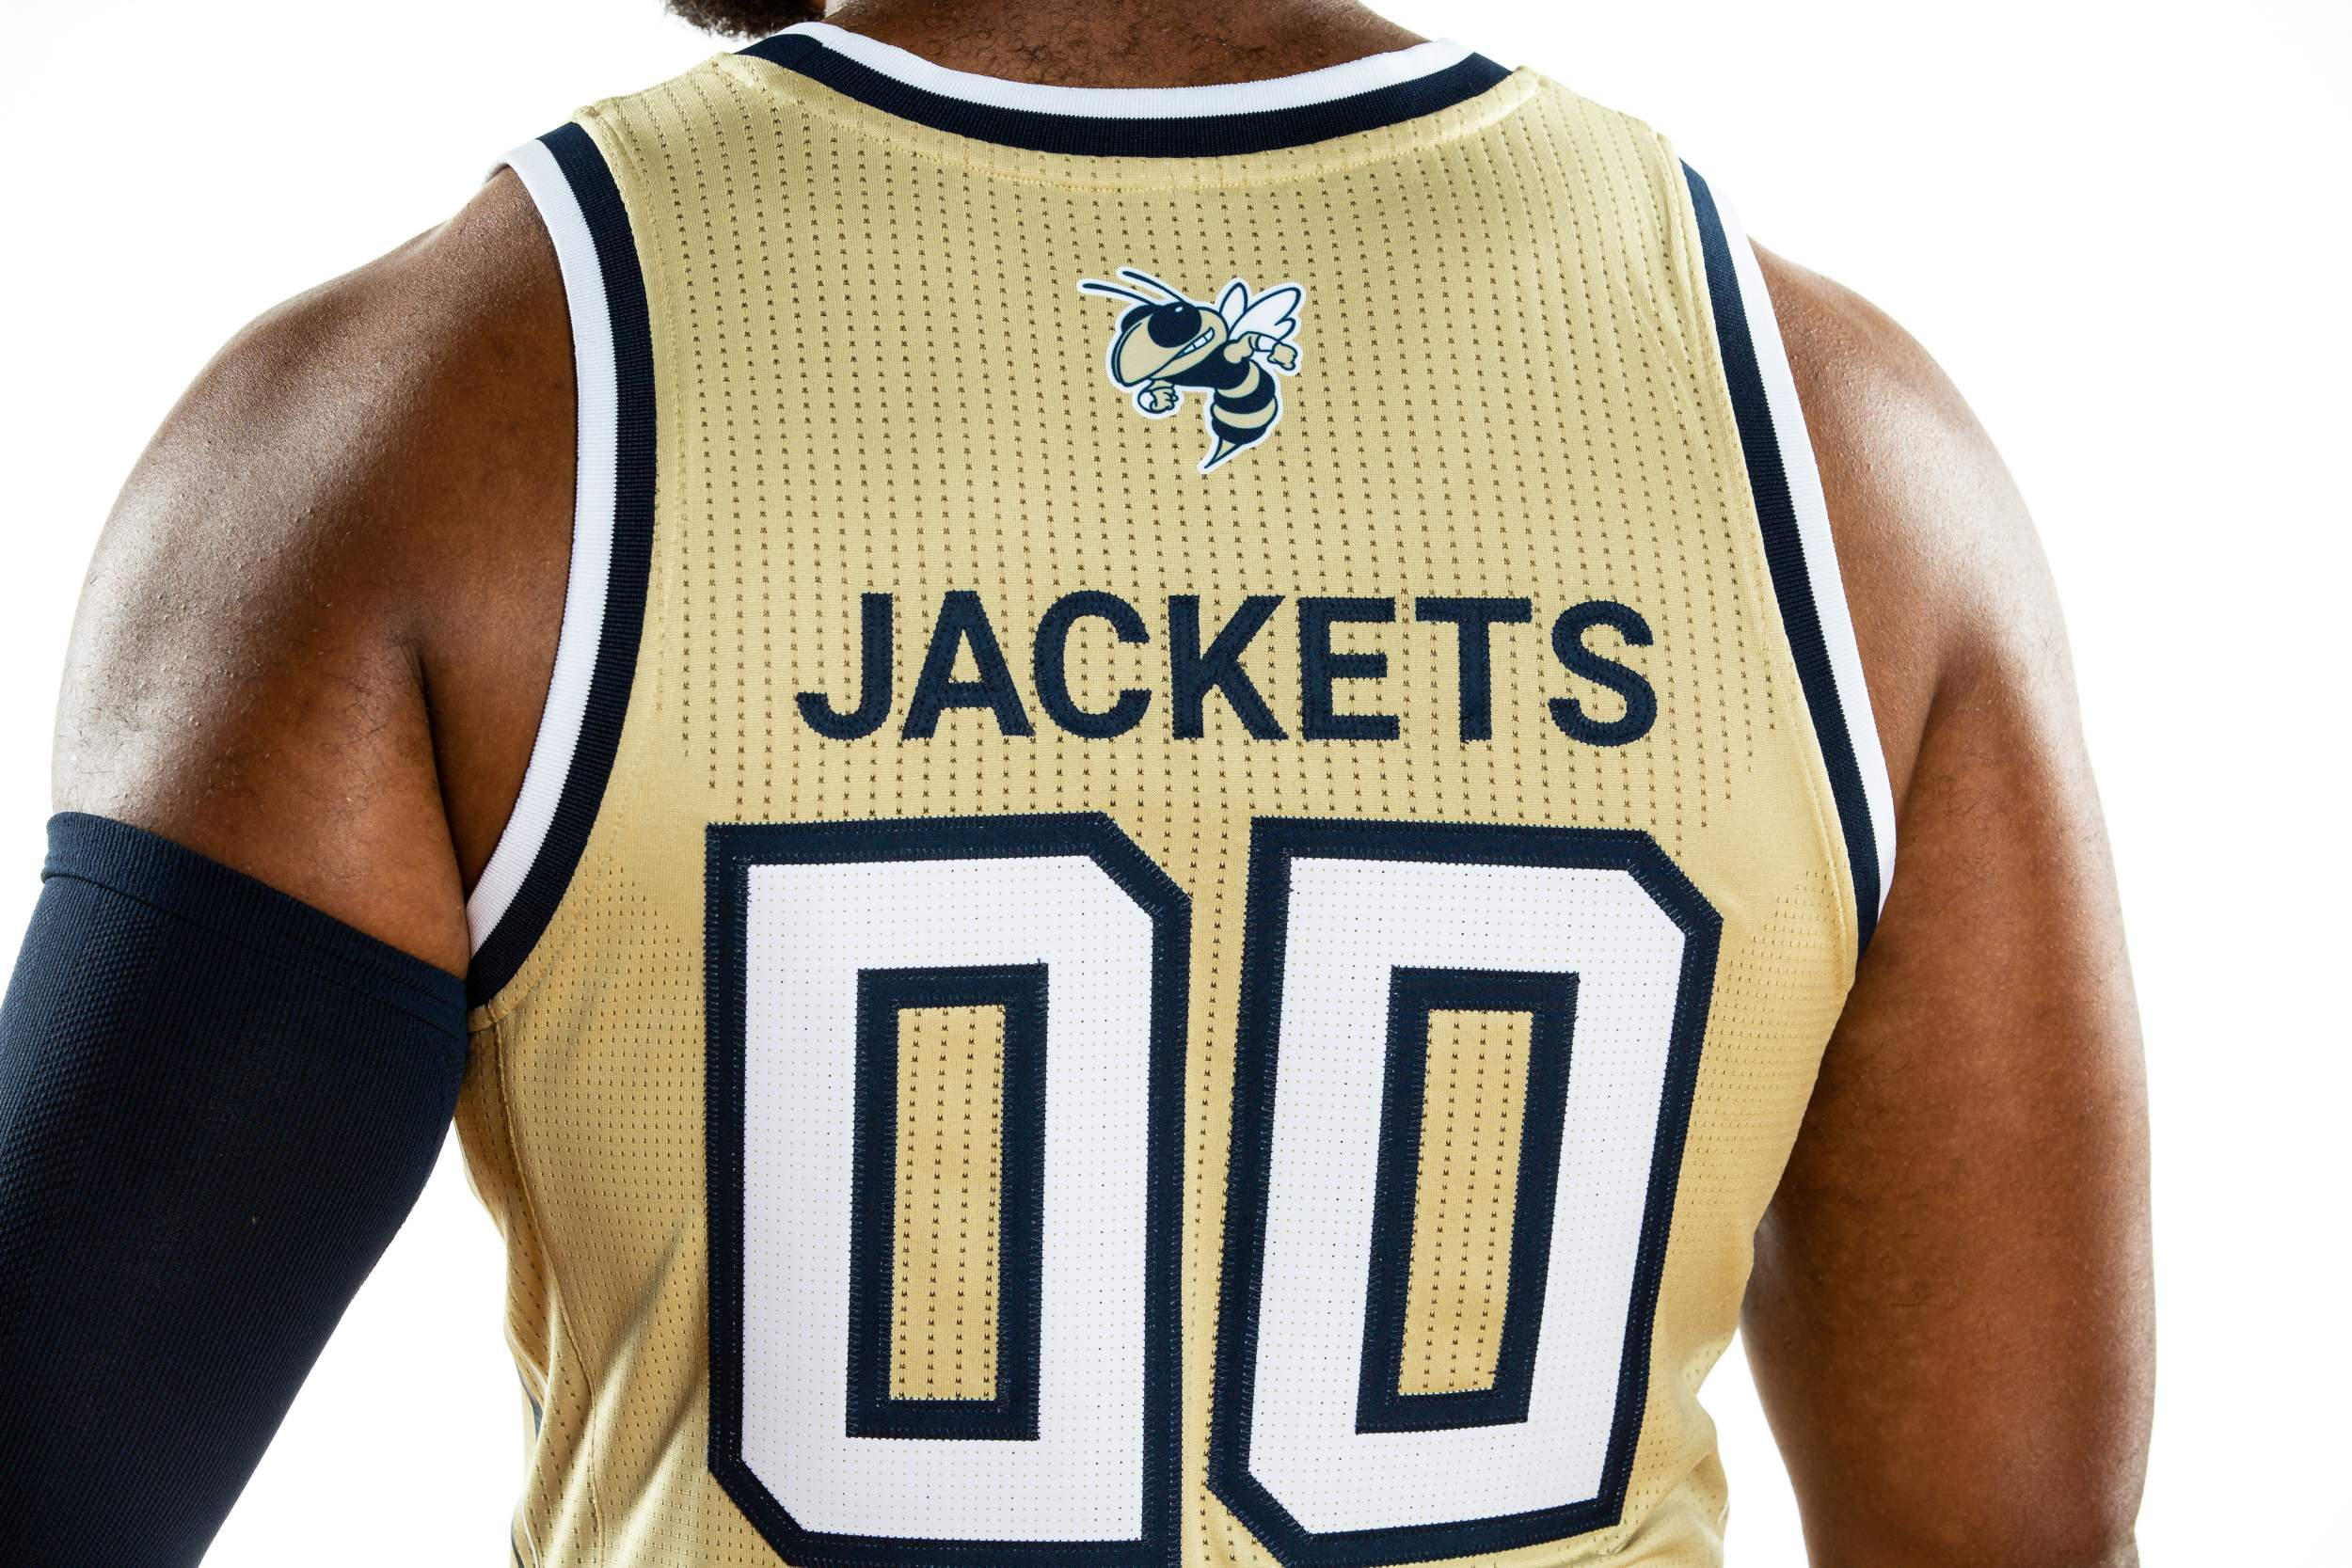 8ba531985 ... adidas uniforms provide the perfect blend of style and technology for  elite performance. Each Georgia Tech basketball jersey features recycled